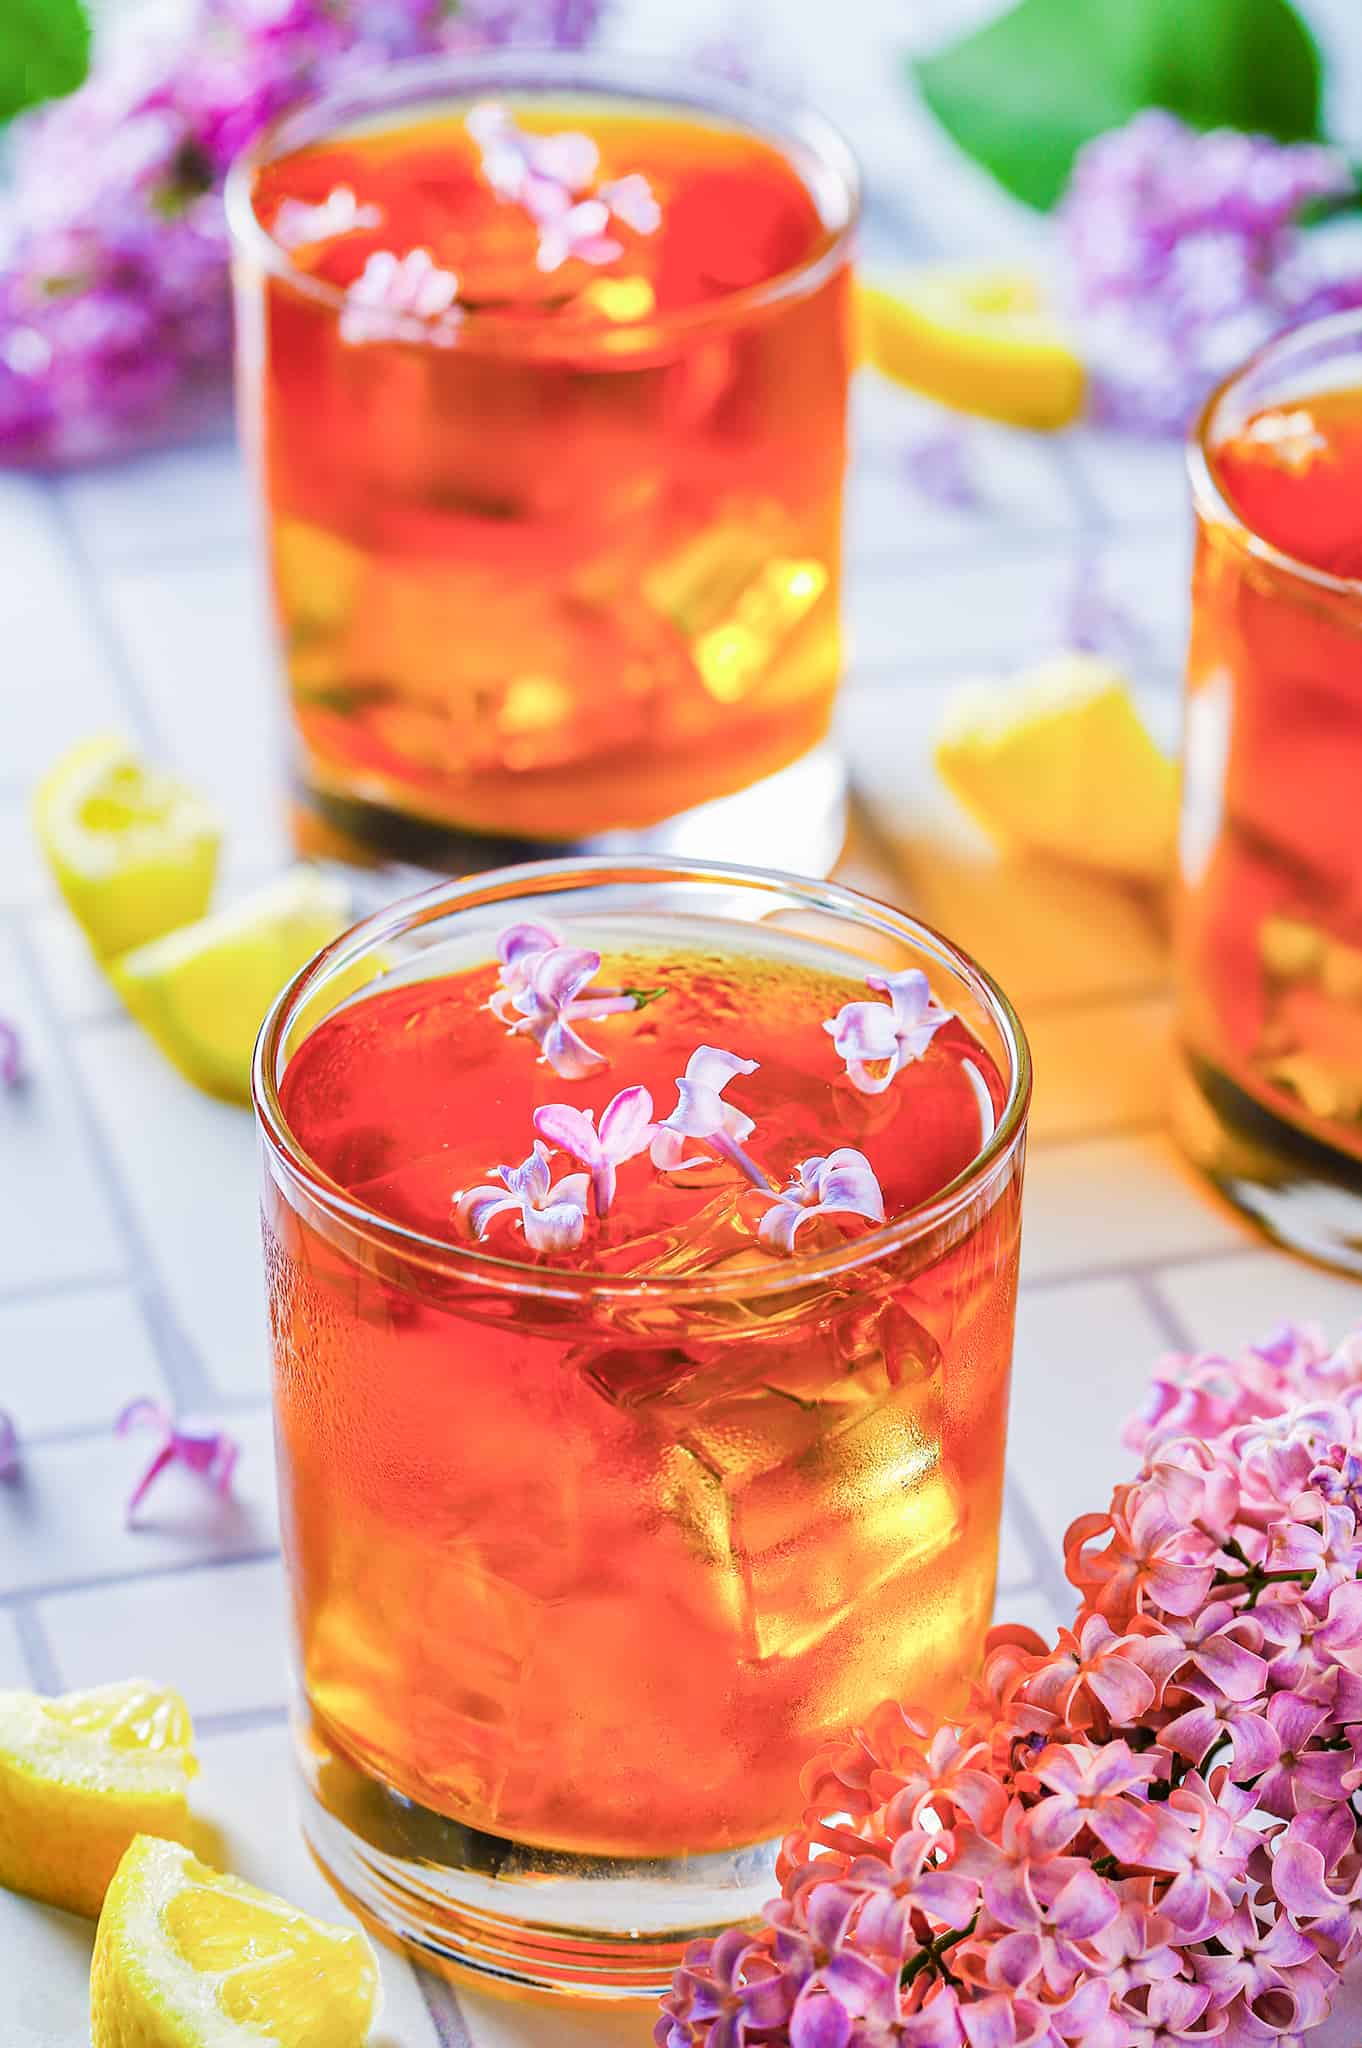 lilac tea in glasses with lilac flowers